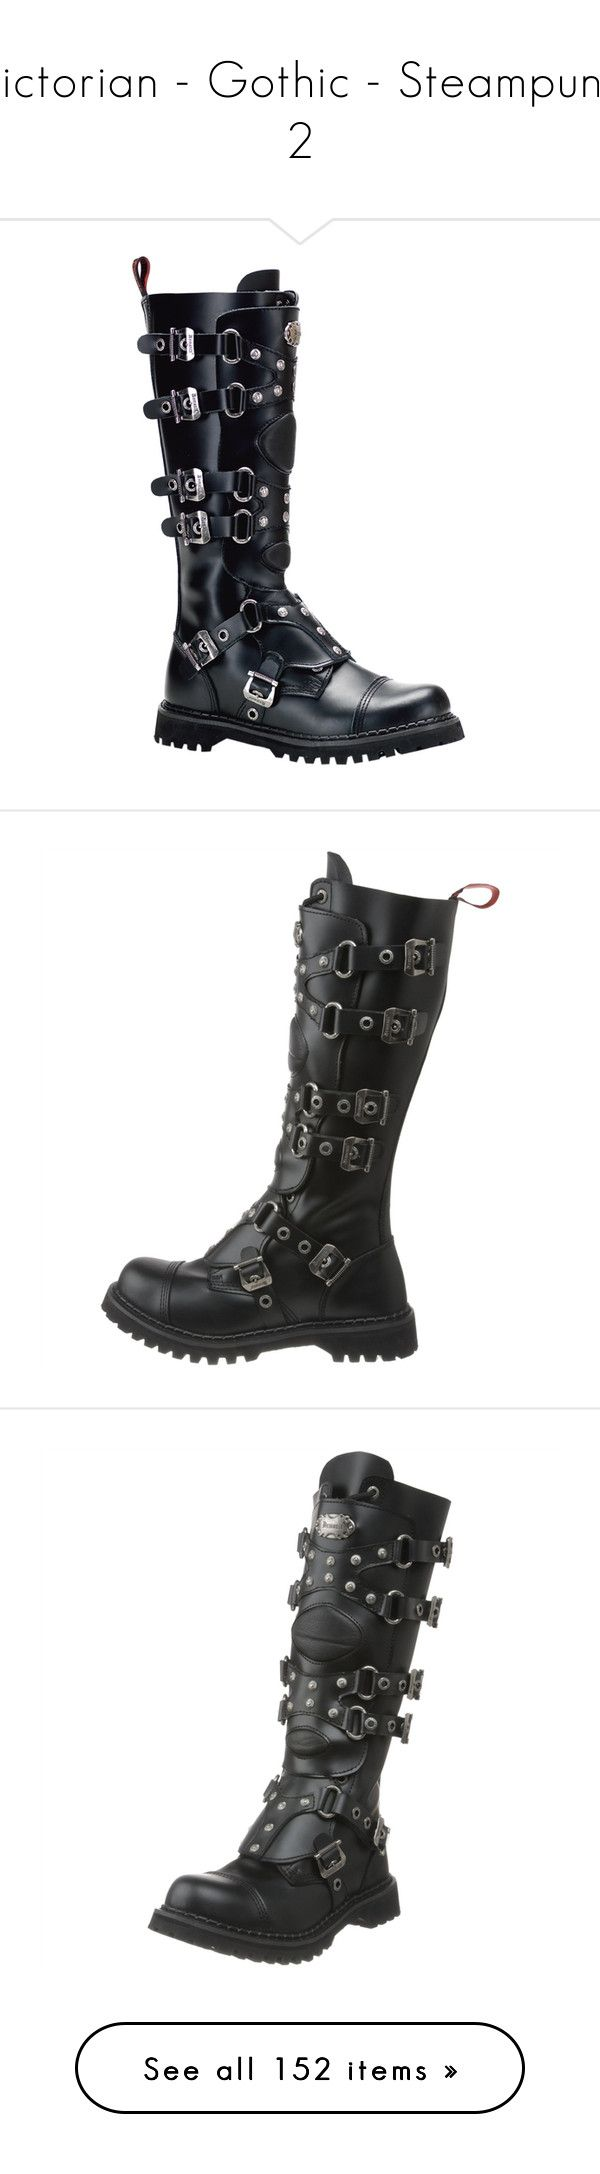 """""""Victorian - Gothic - Steampunk 2"""" by selene-cinzia ❤ liked on Polyvore featuring shoes, boots, botas, demonia boots, black leather knee high boots, black boots, black goth boots, leather knee high boots, black leather boots and black gothic boots"""